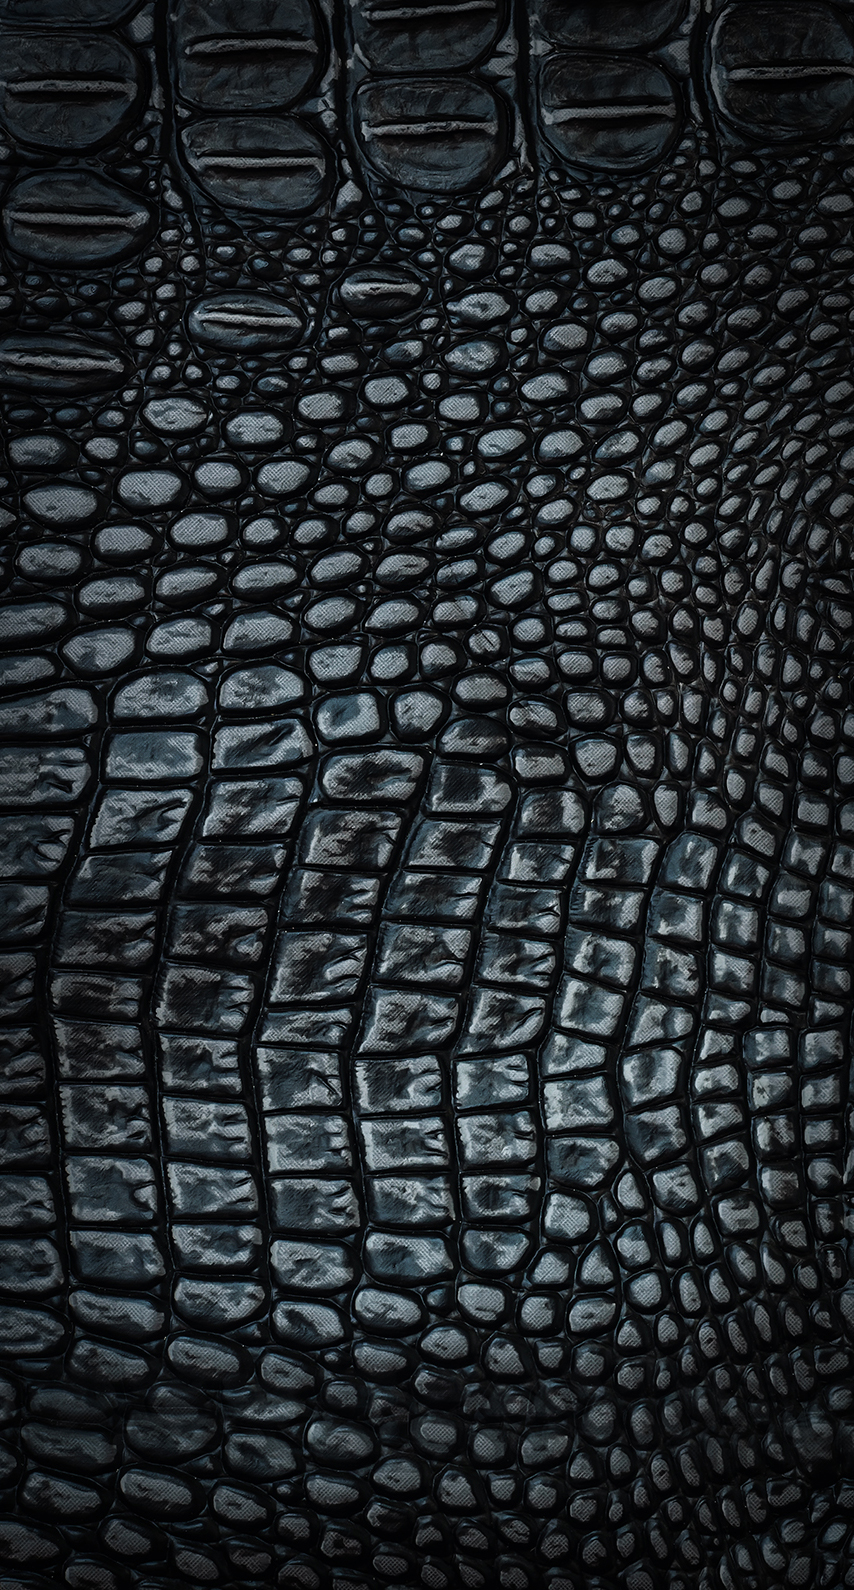 earth surface, skin, snake, artificial